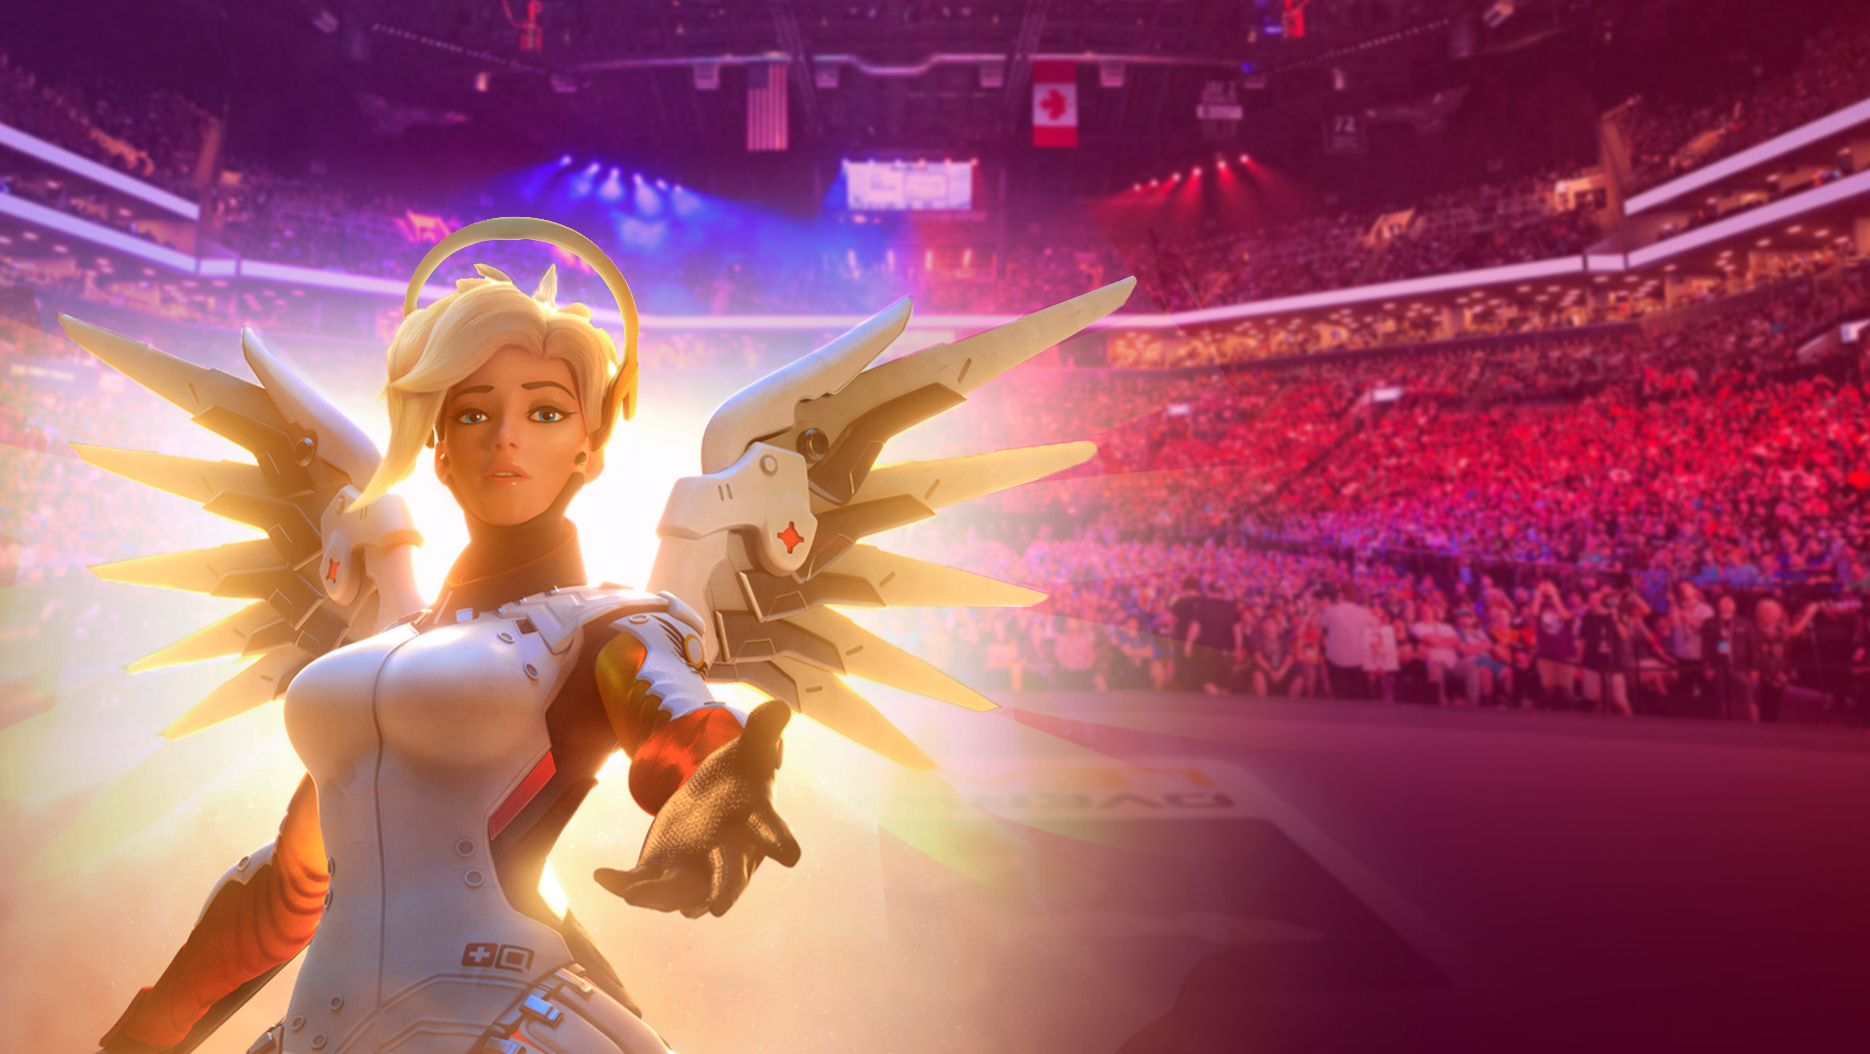 Mercy extending her hand, set against the background of an Overwatch League stadium audience.